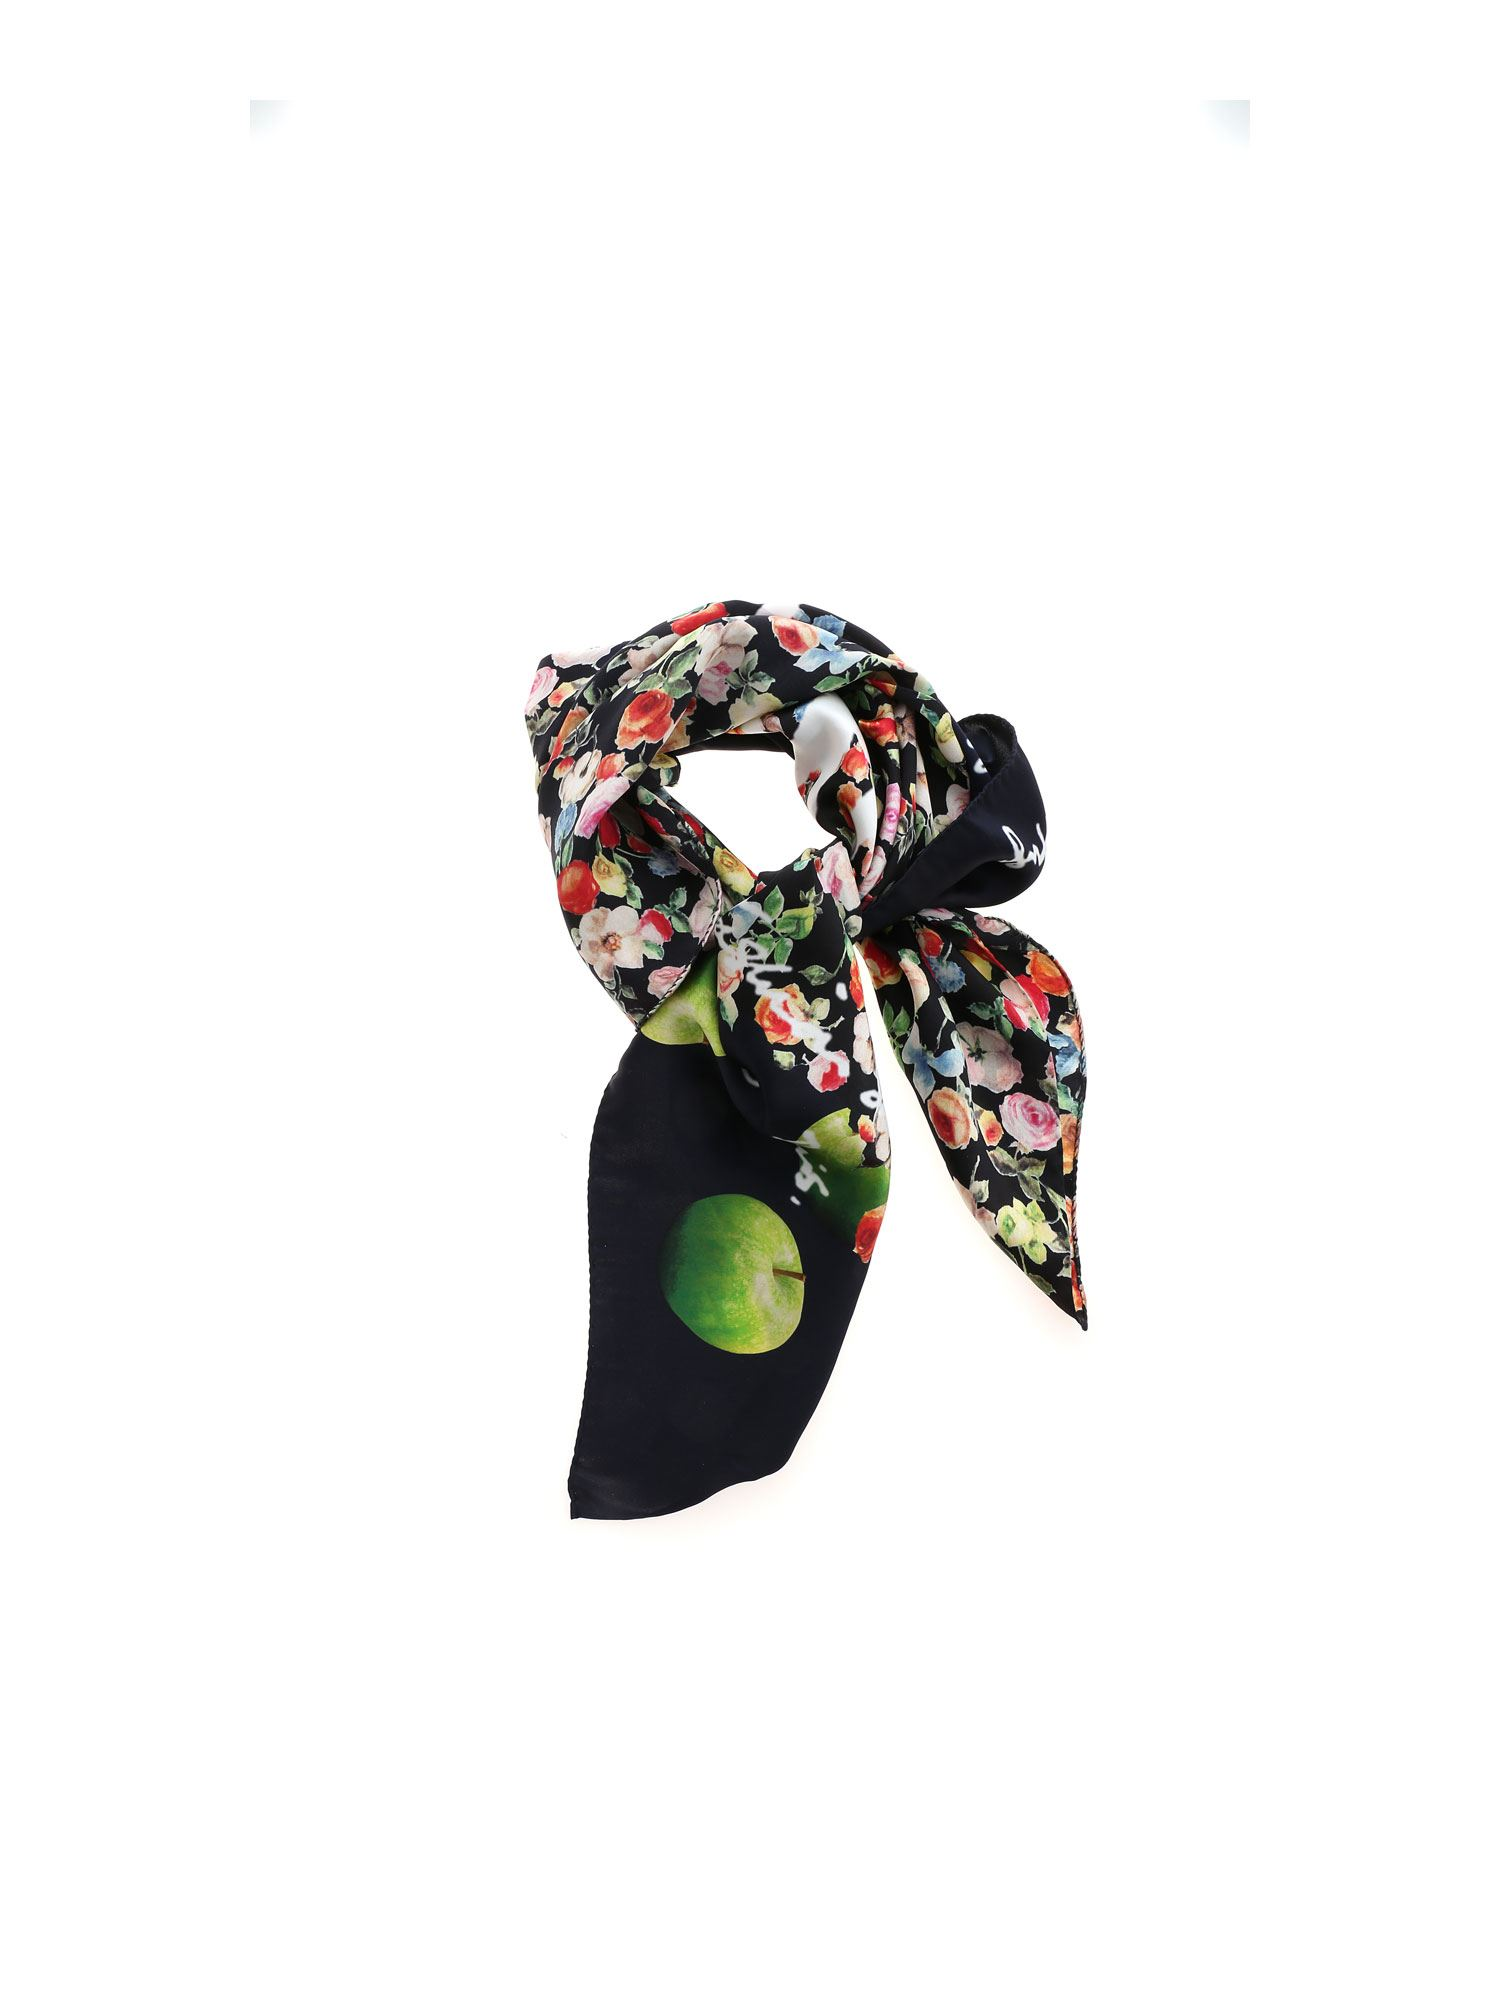 Paul Smith FLORAL PRINT FOULARD IN BLACK